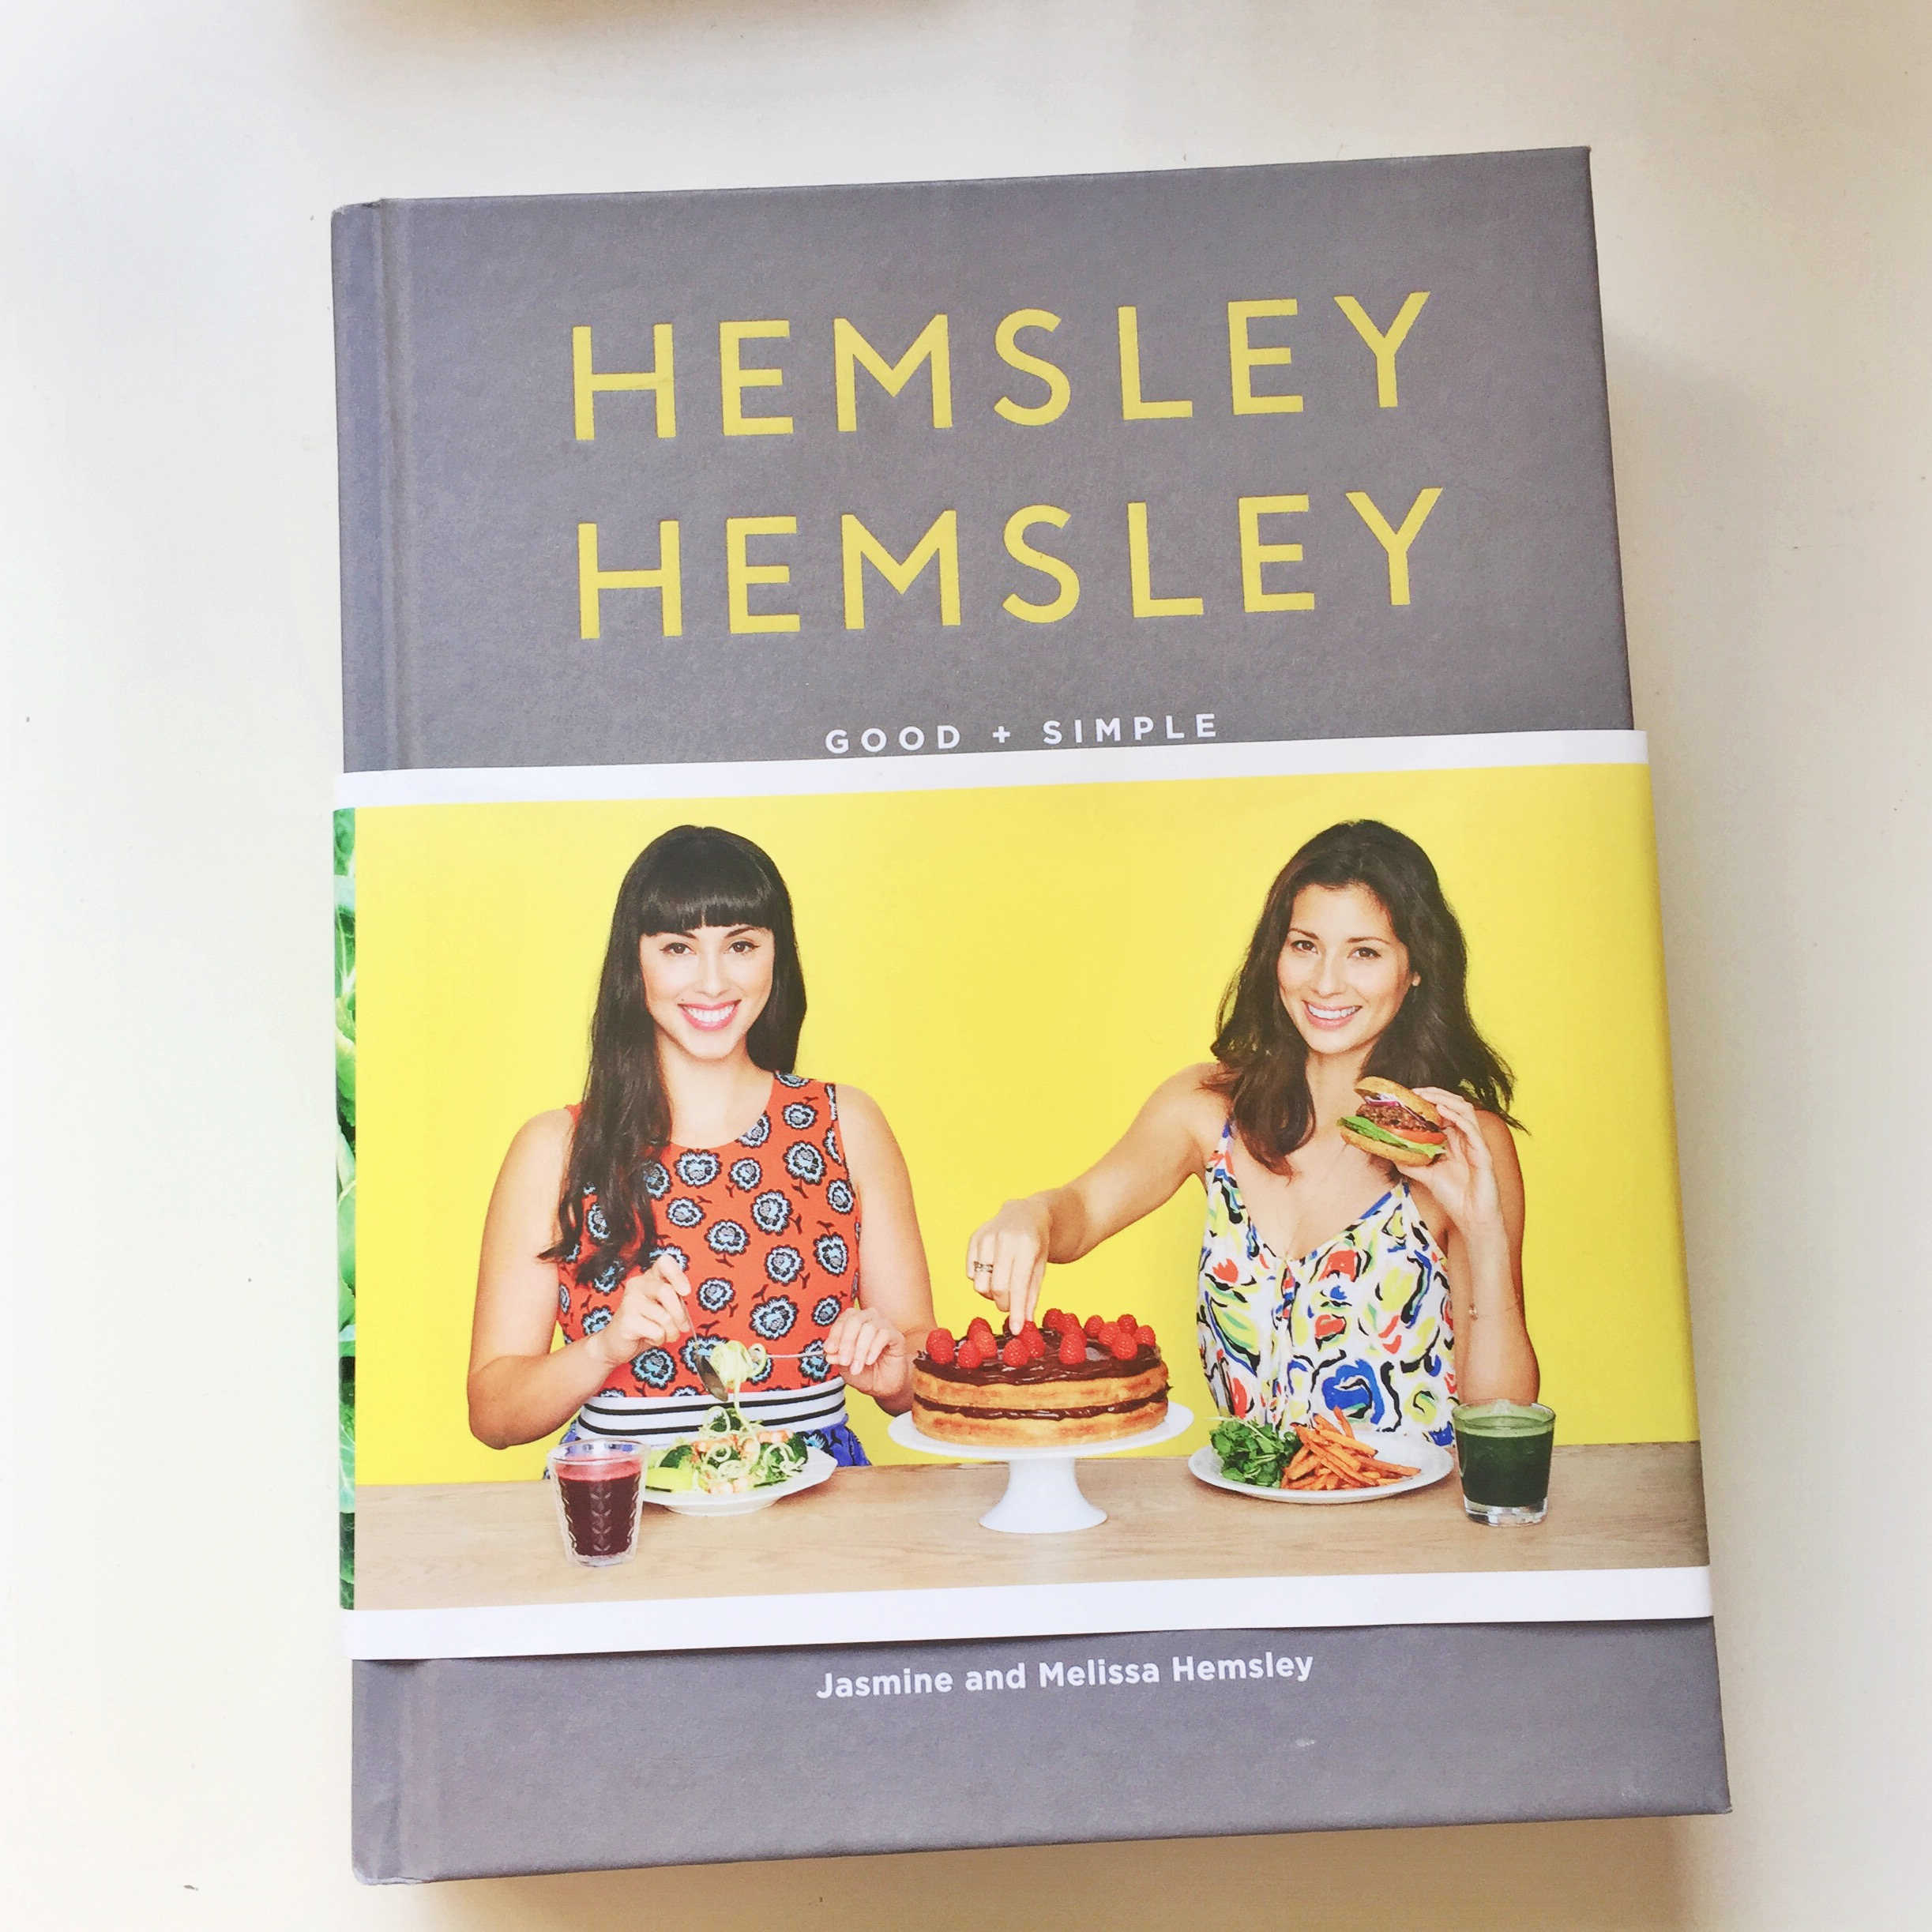 Good and simple hemsley hemsley